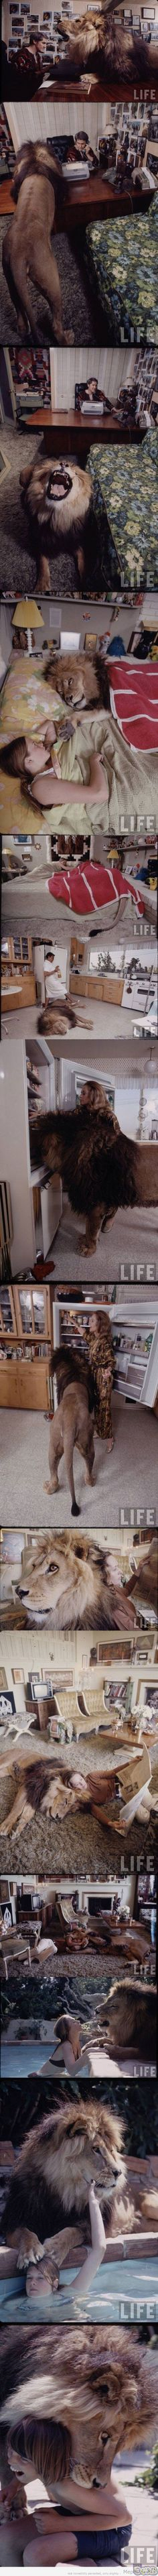 Living with #Togar the #lion ... www.justdwl.net